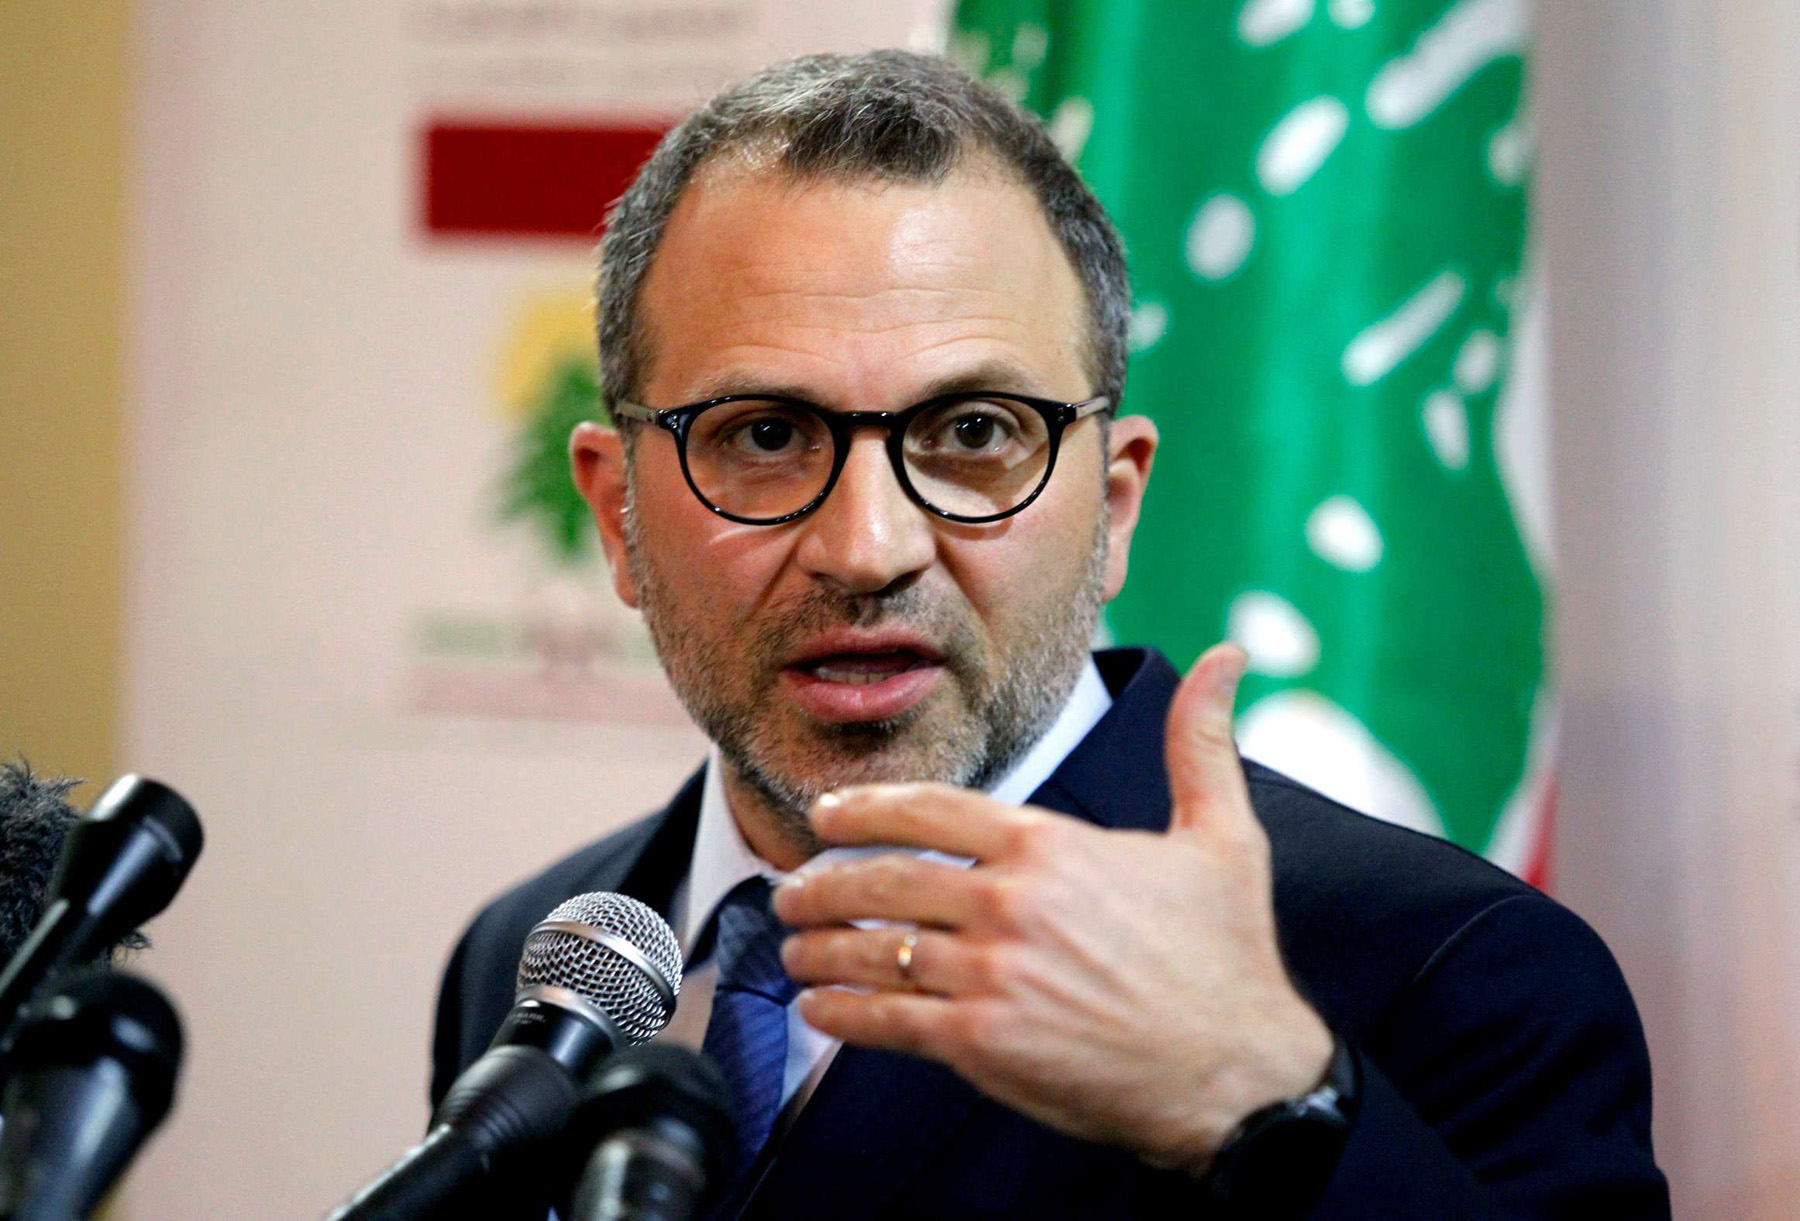 Lebanon's Foreign Minister Gebran Bassil speaks during a news conference in Beirut, last June. (Reuters)